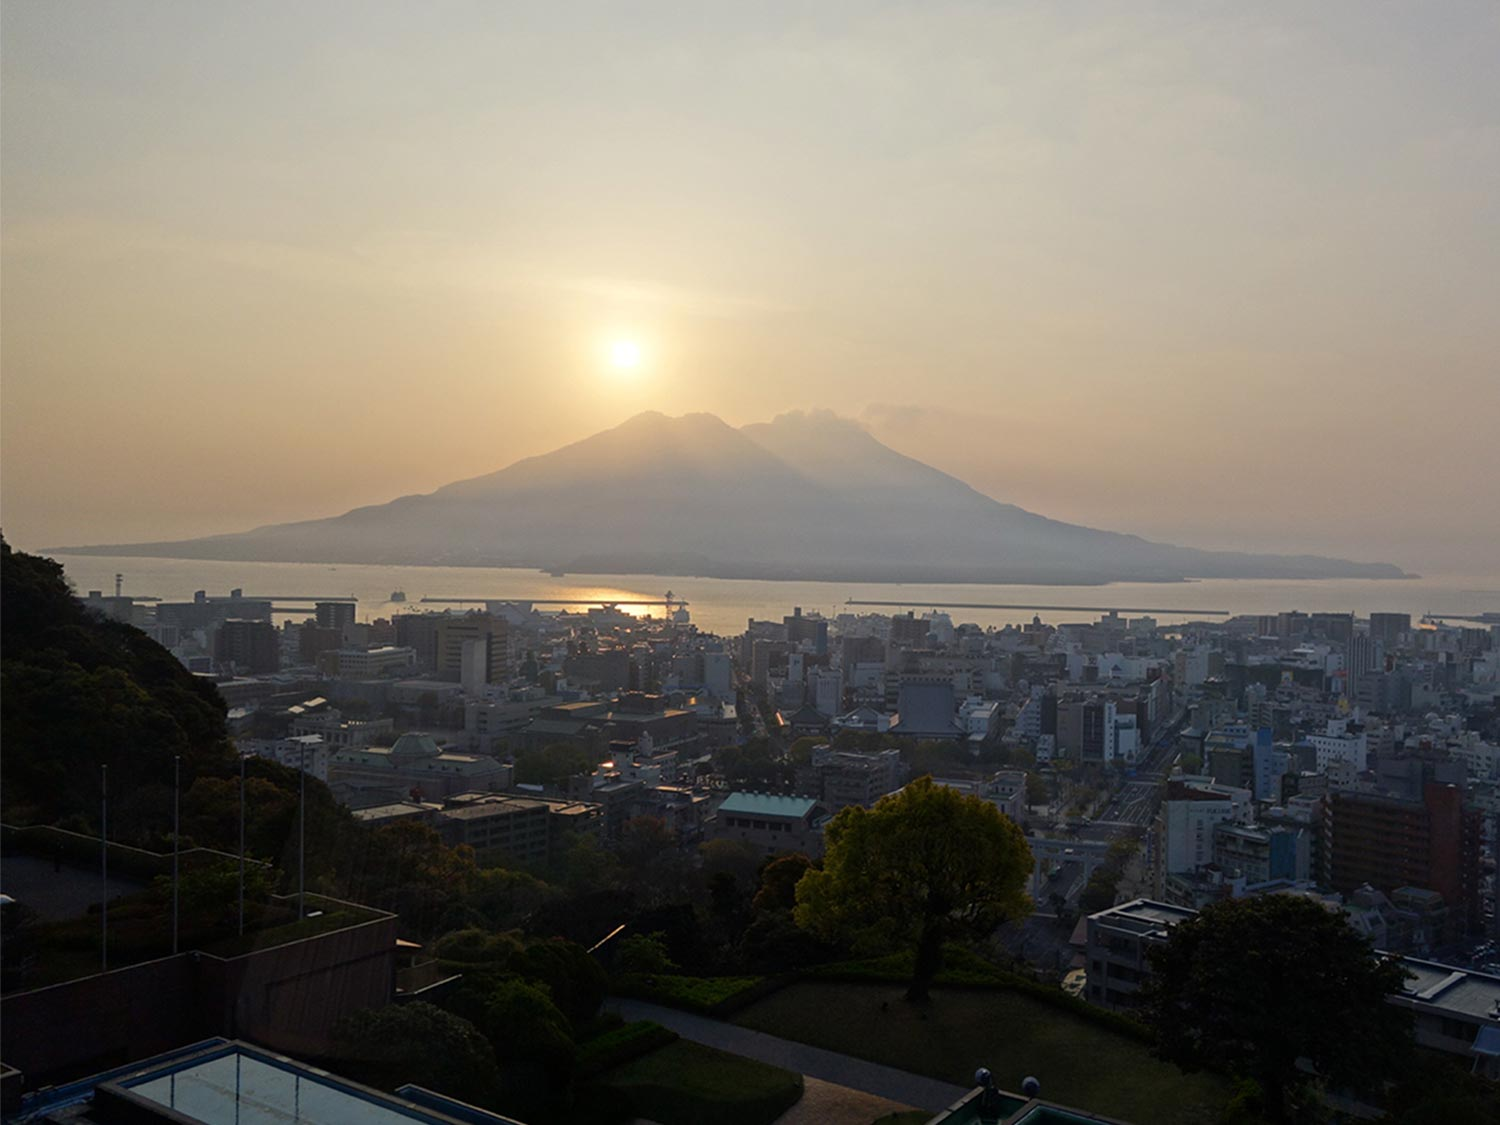 Kagoshima Japan – Visit the City of the Last Samurai